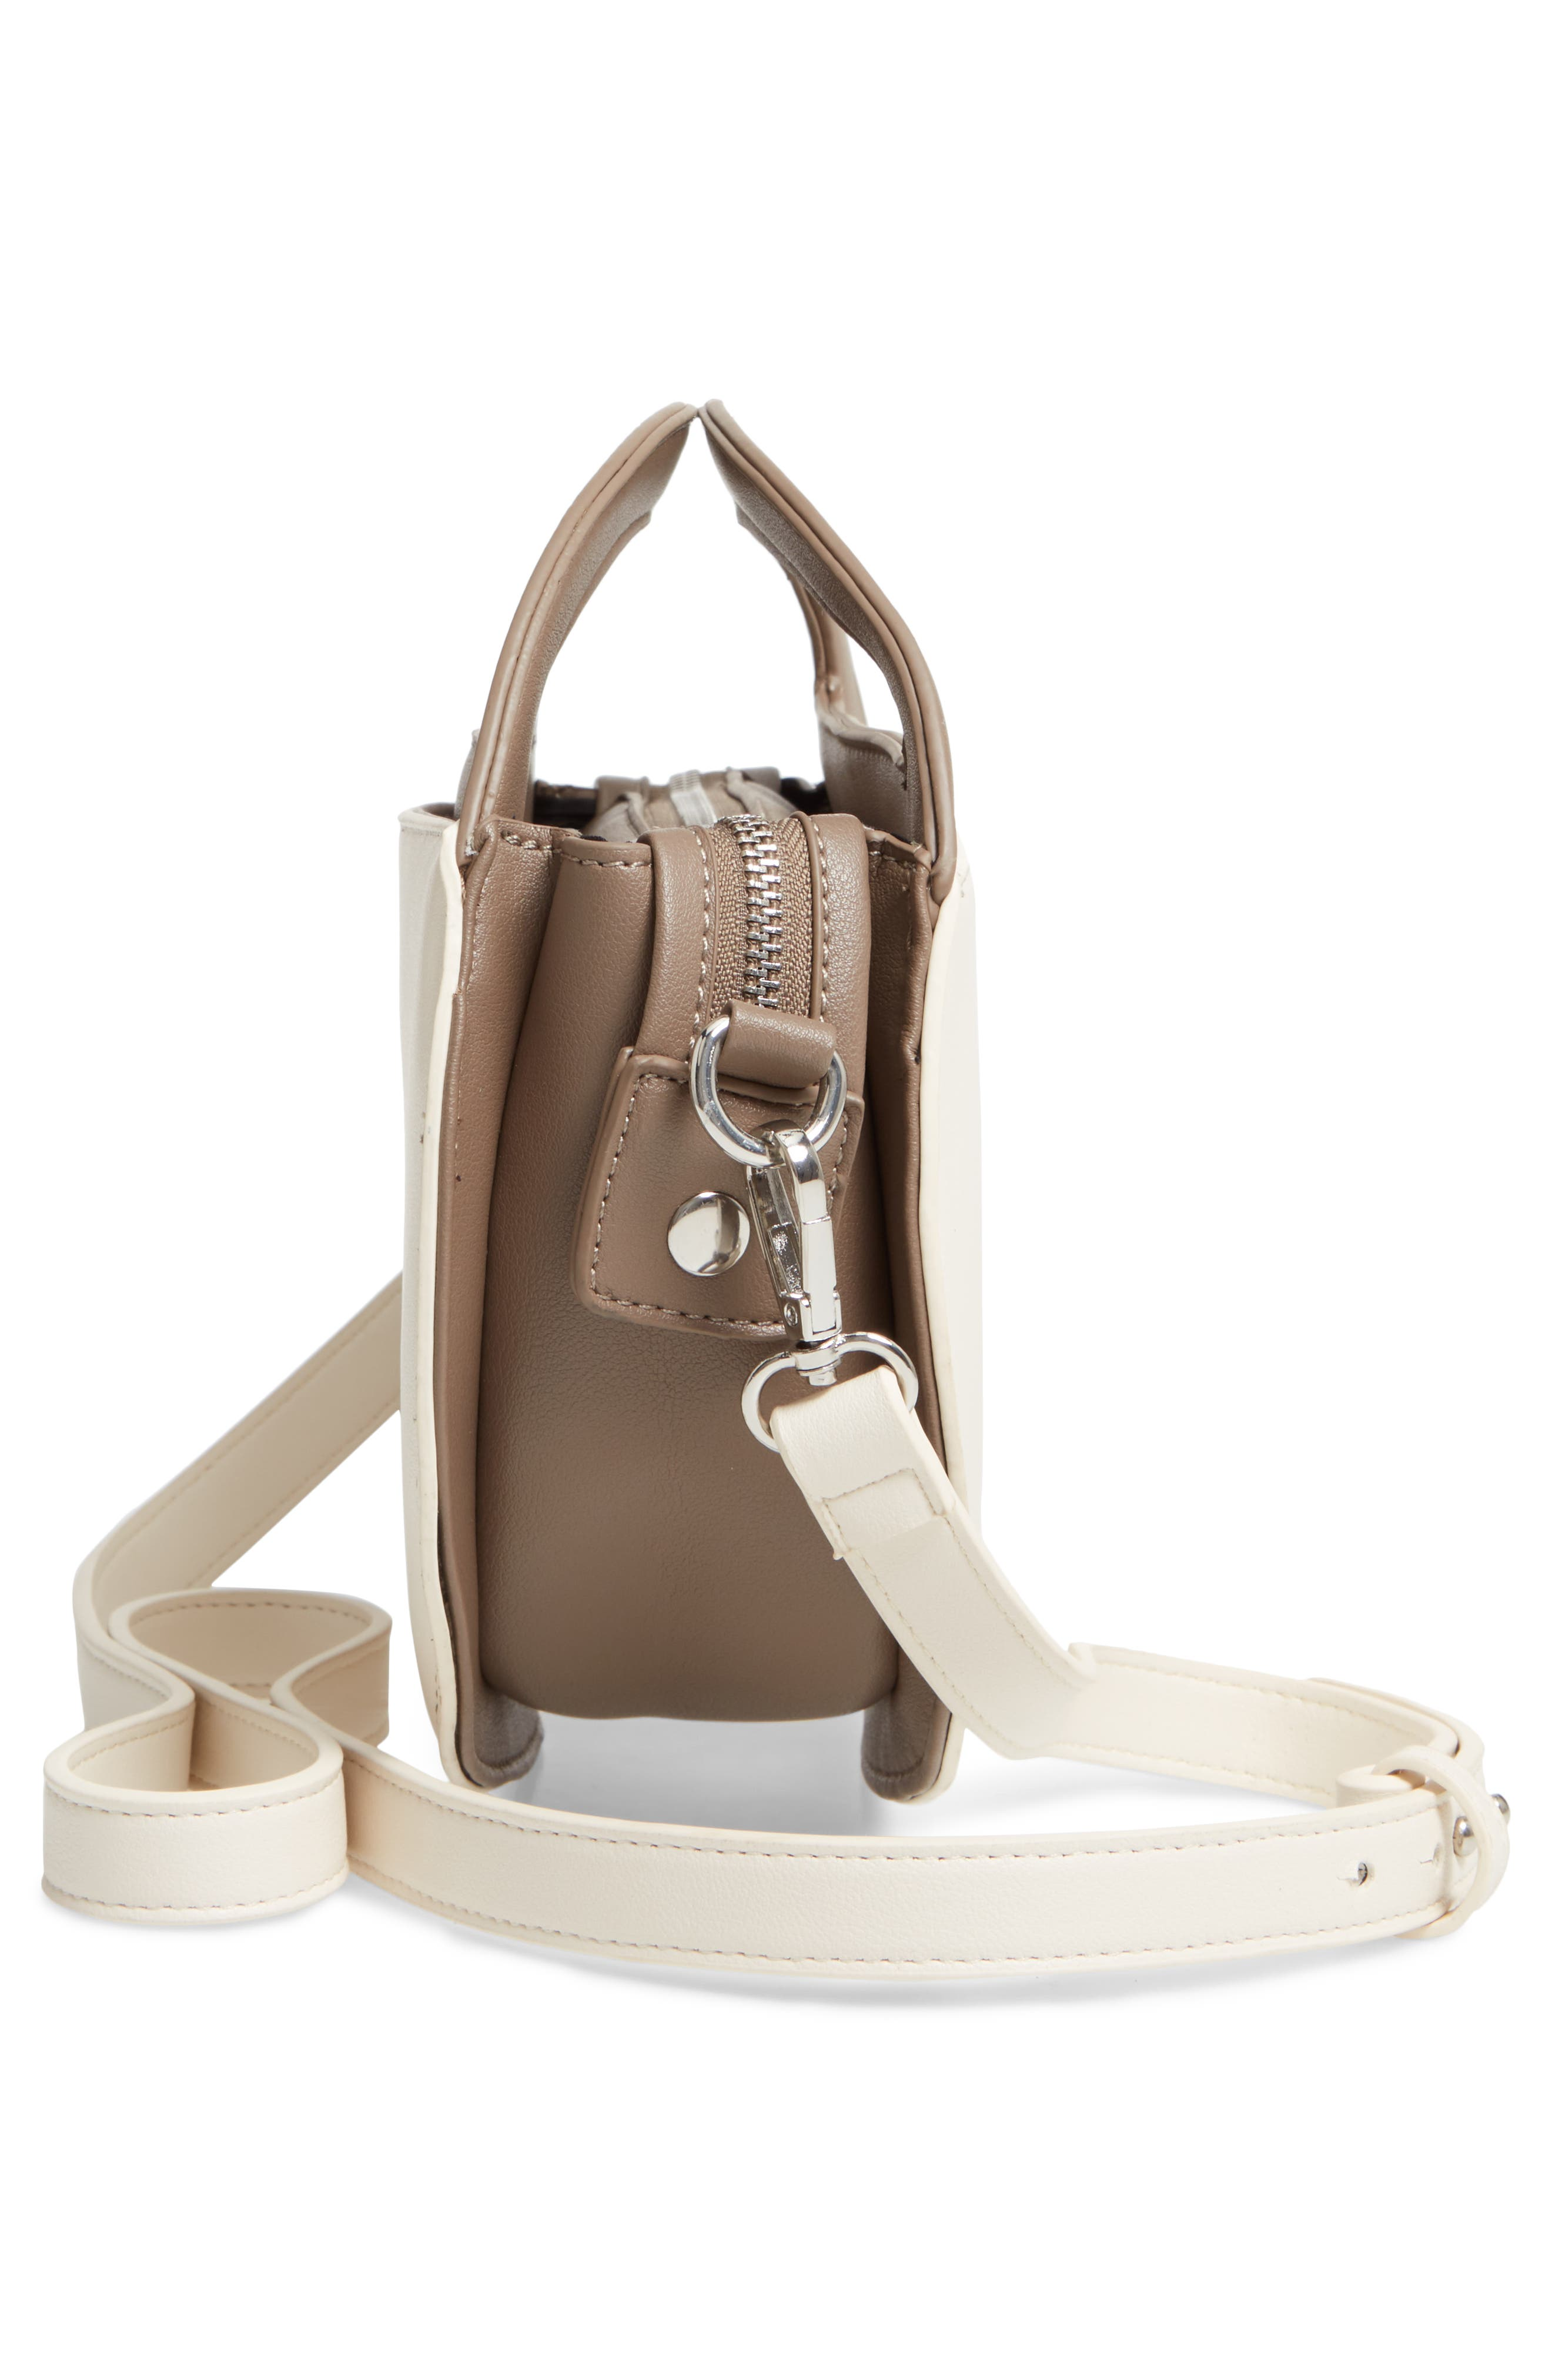 Two-Tone Faux Leather Oval Crossbody Bag,                             Alternate thumbnail 5, color,                             250